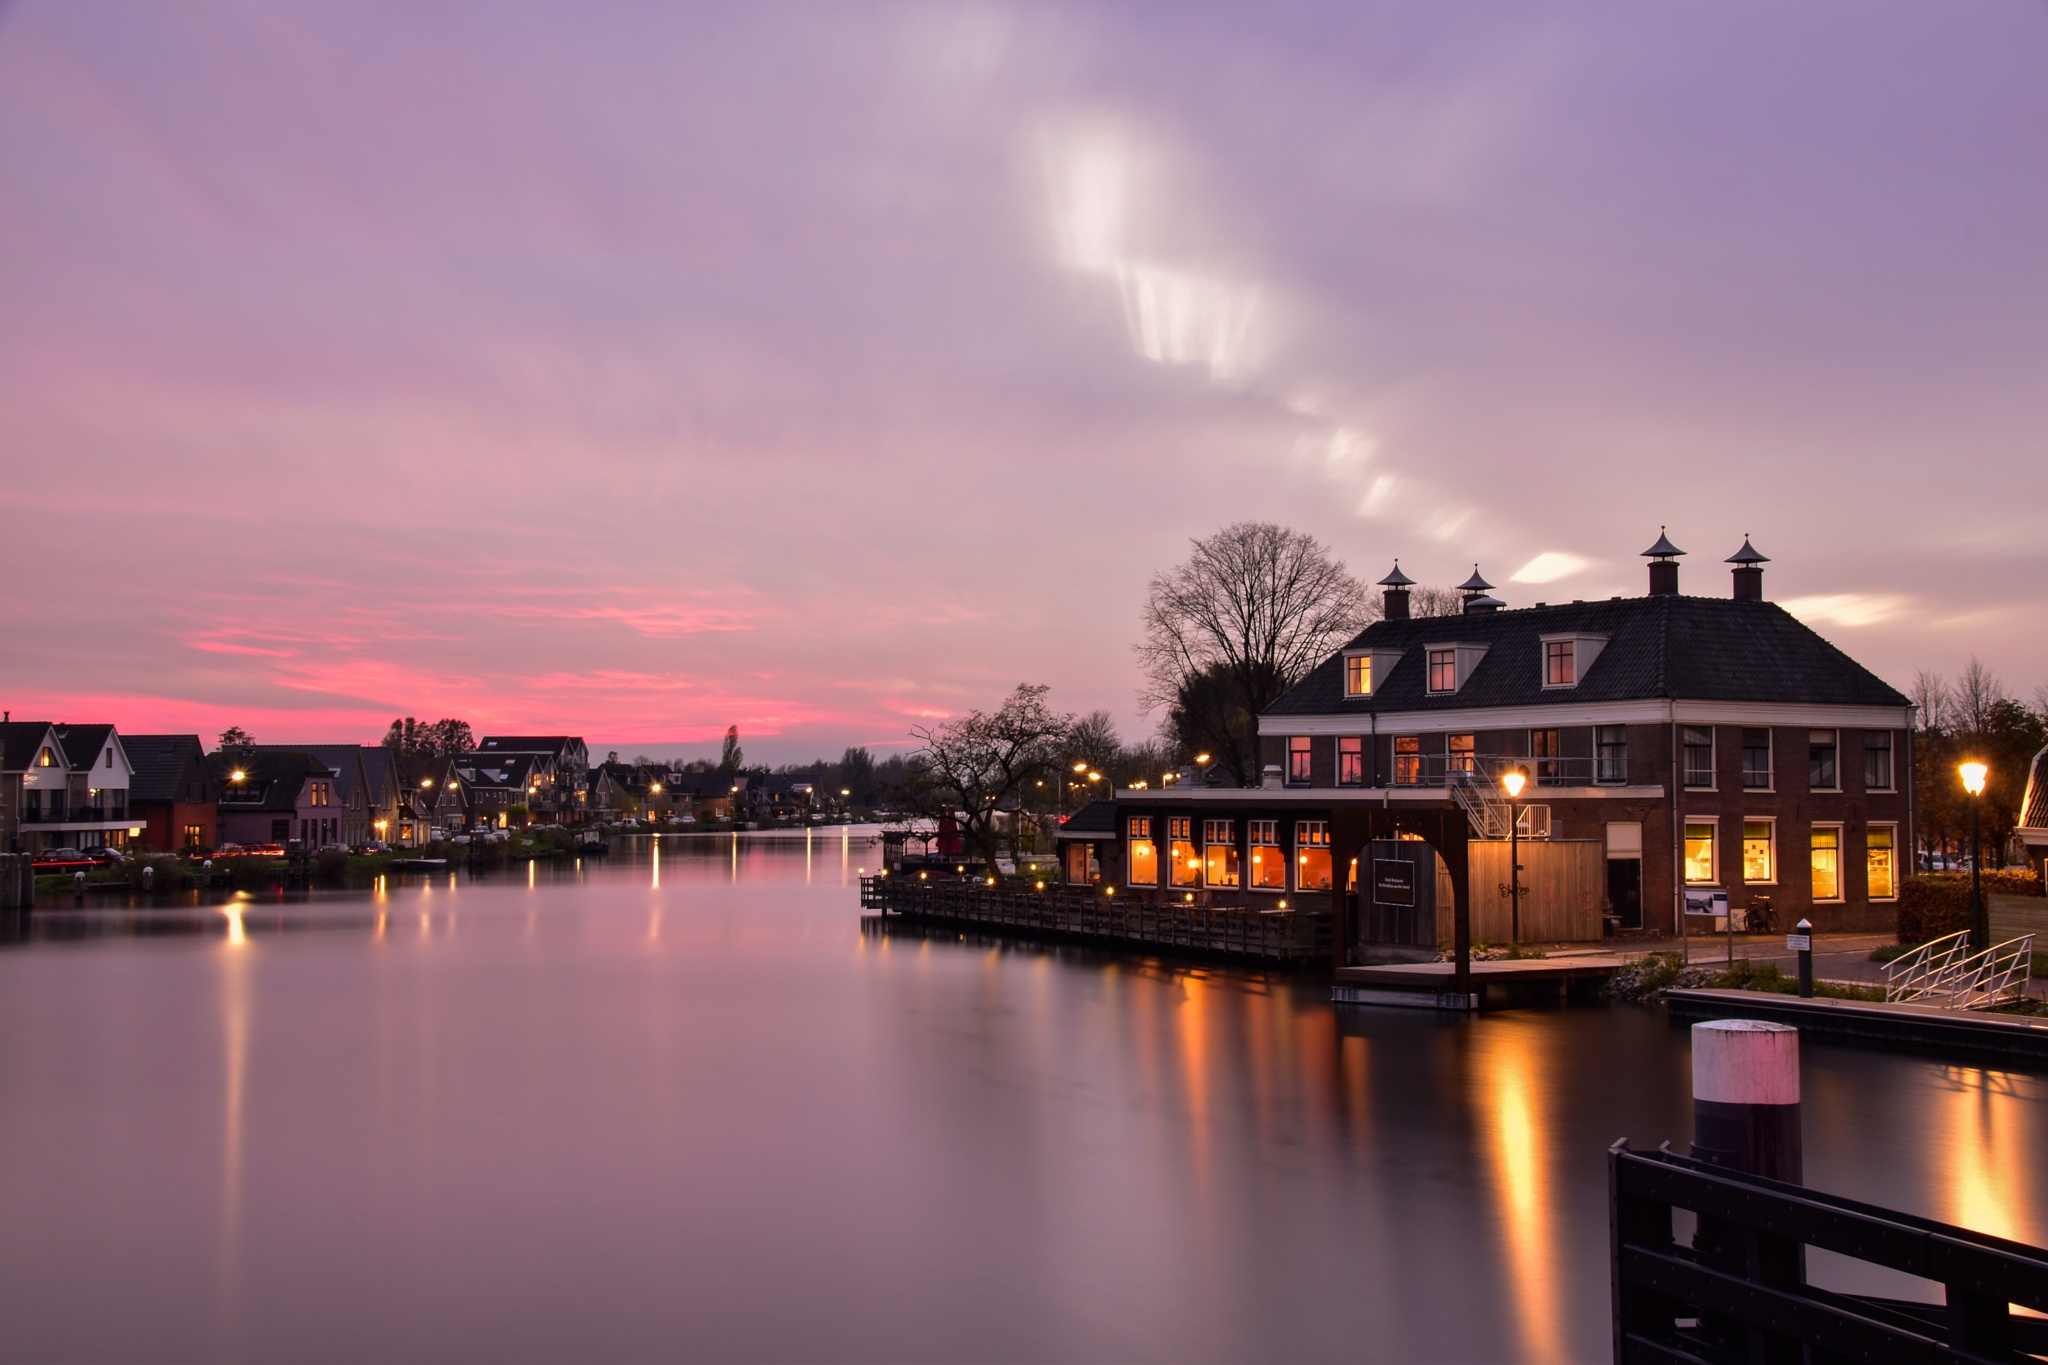 Evening colours by San Zijlstra